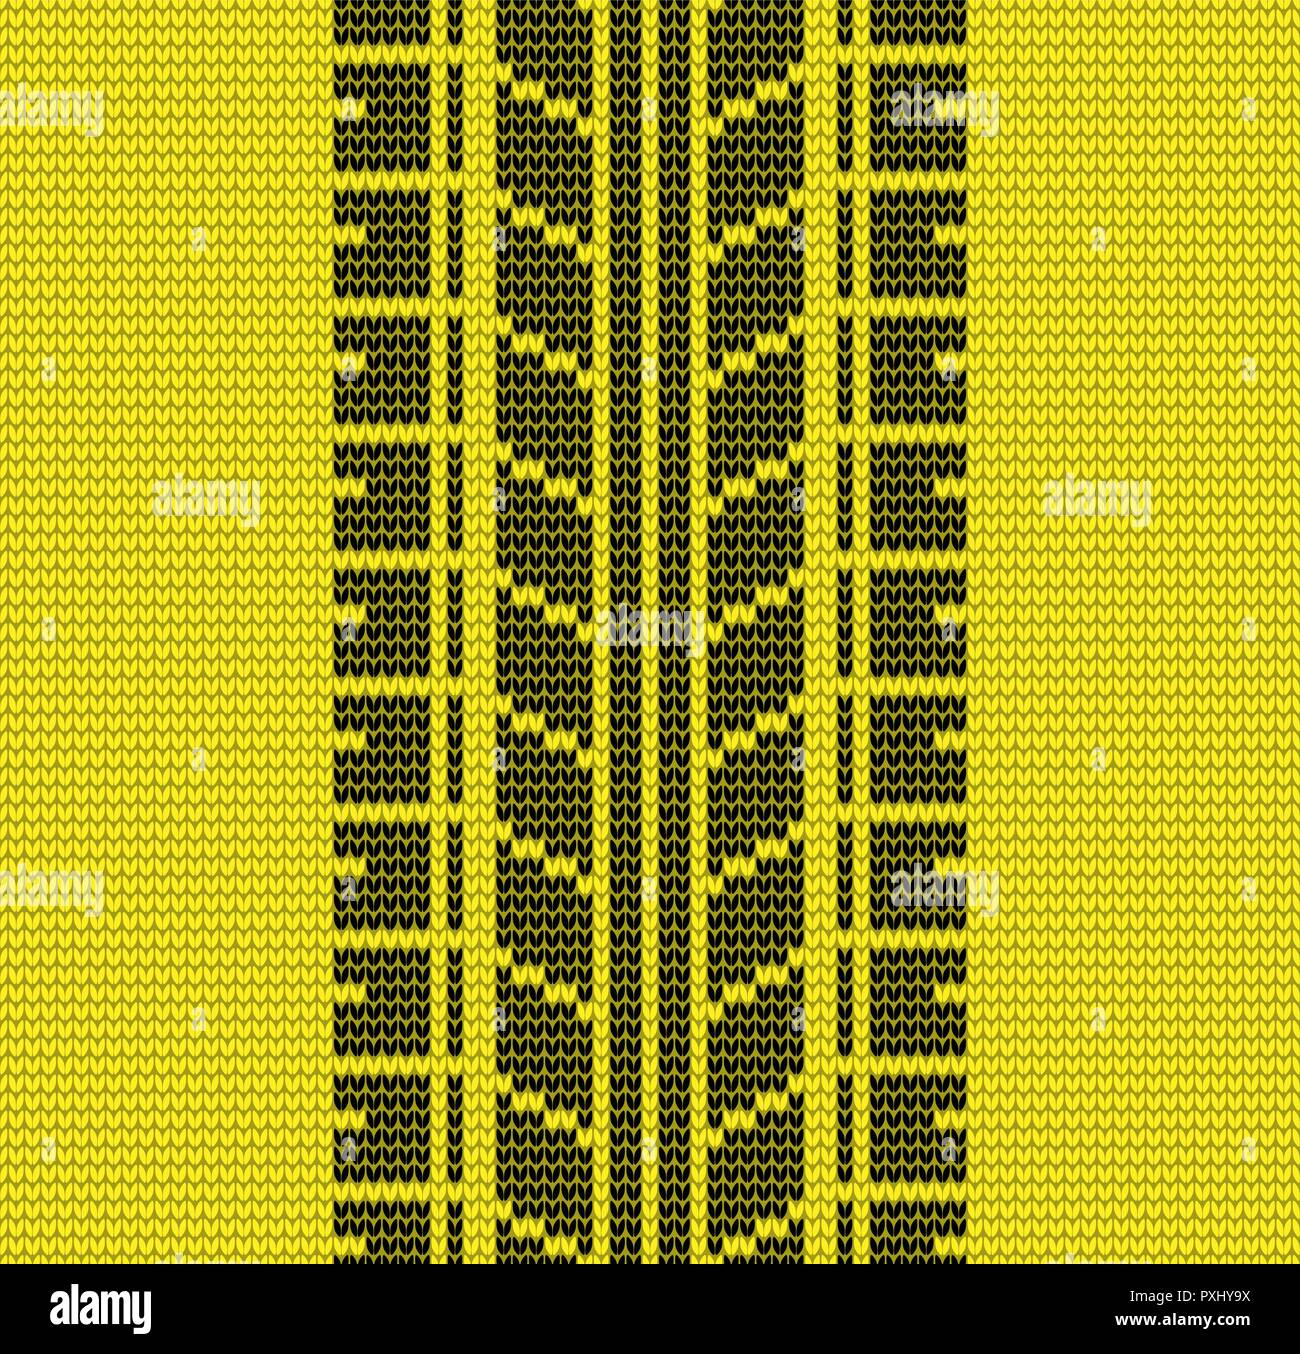 Abstract black and yellow tire track seamless knitting pattern background - Stock Vector